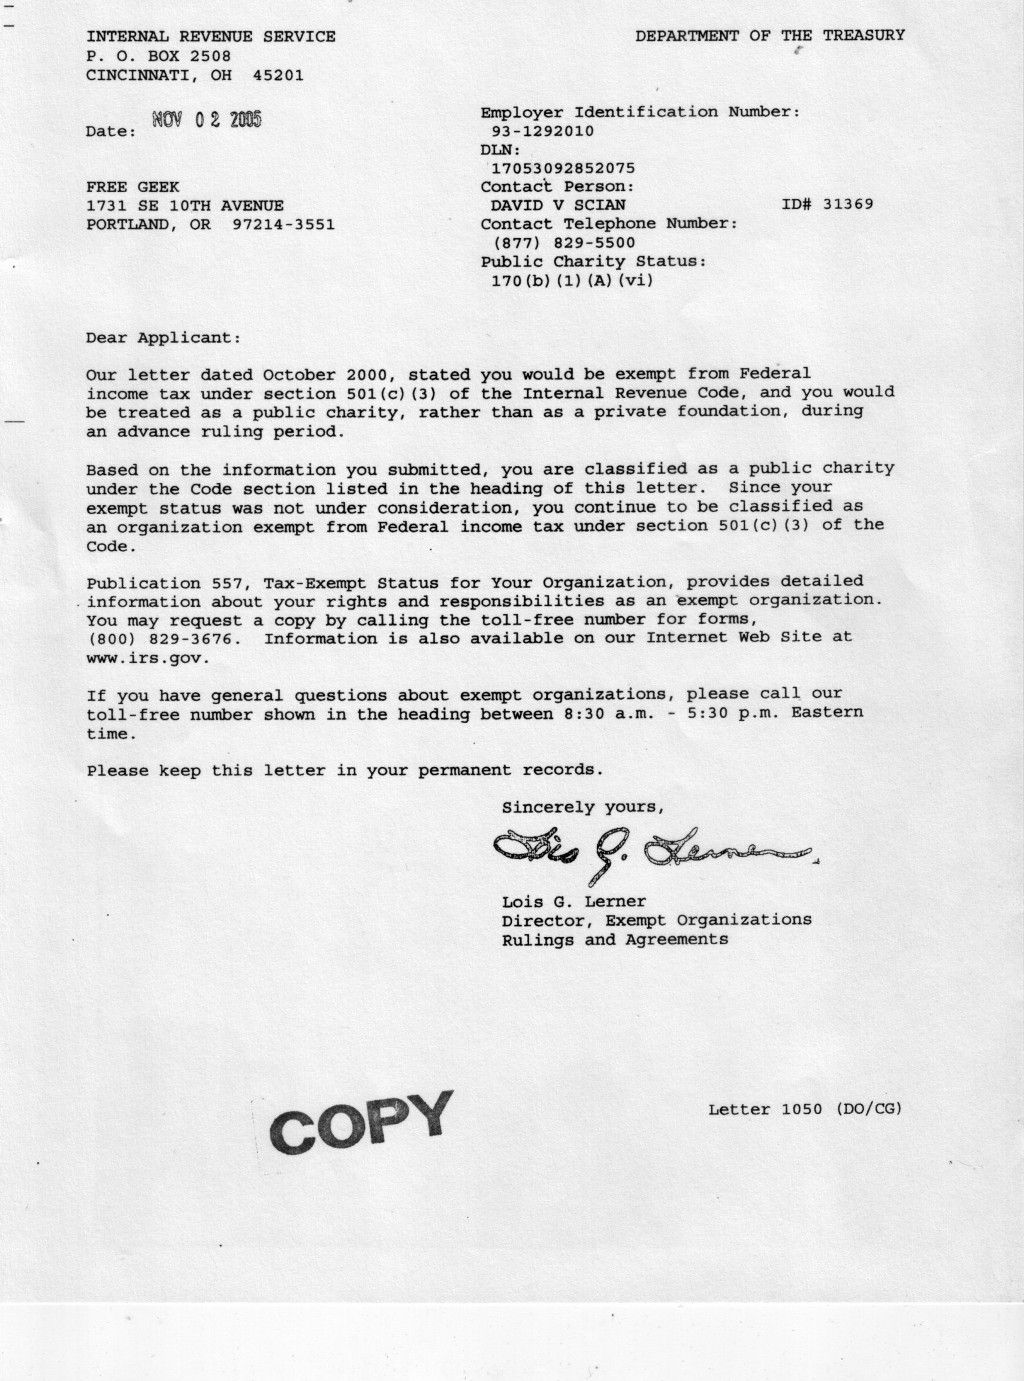 Business Fax Cover Sheet Example Fax cover sheet, How to